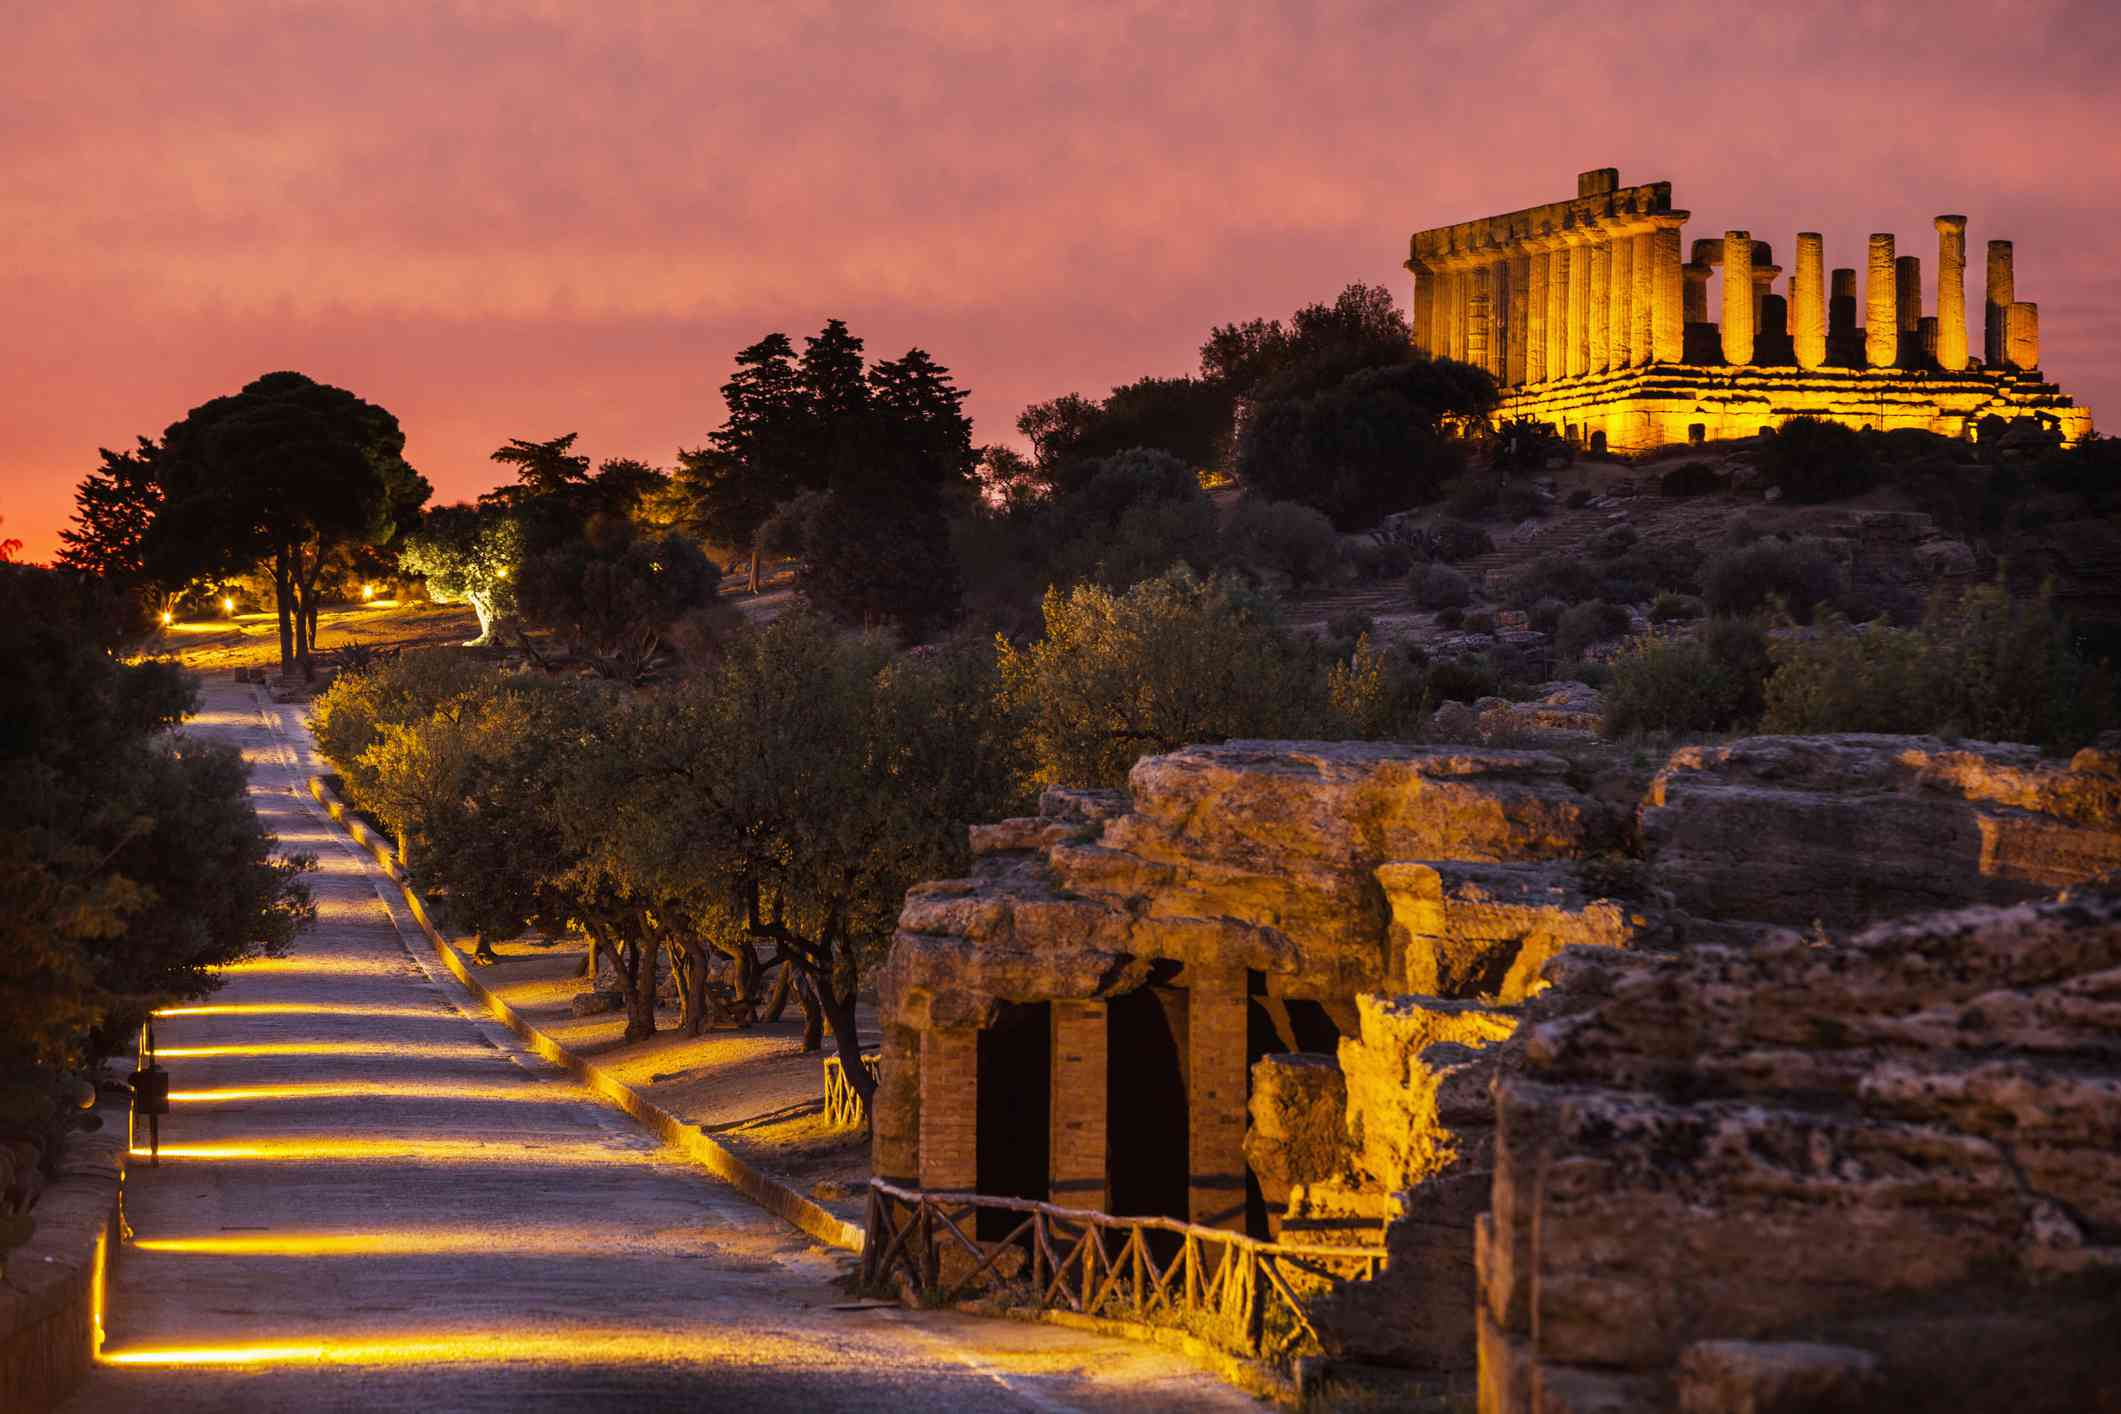 illuminated walkway to the Temple of Juno at dusk